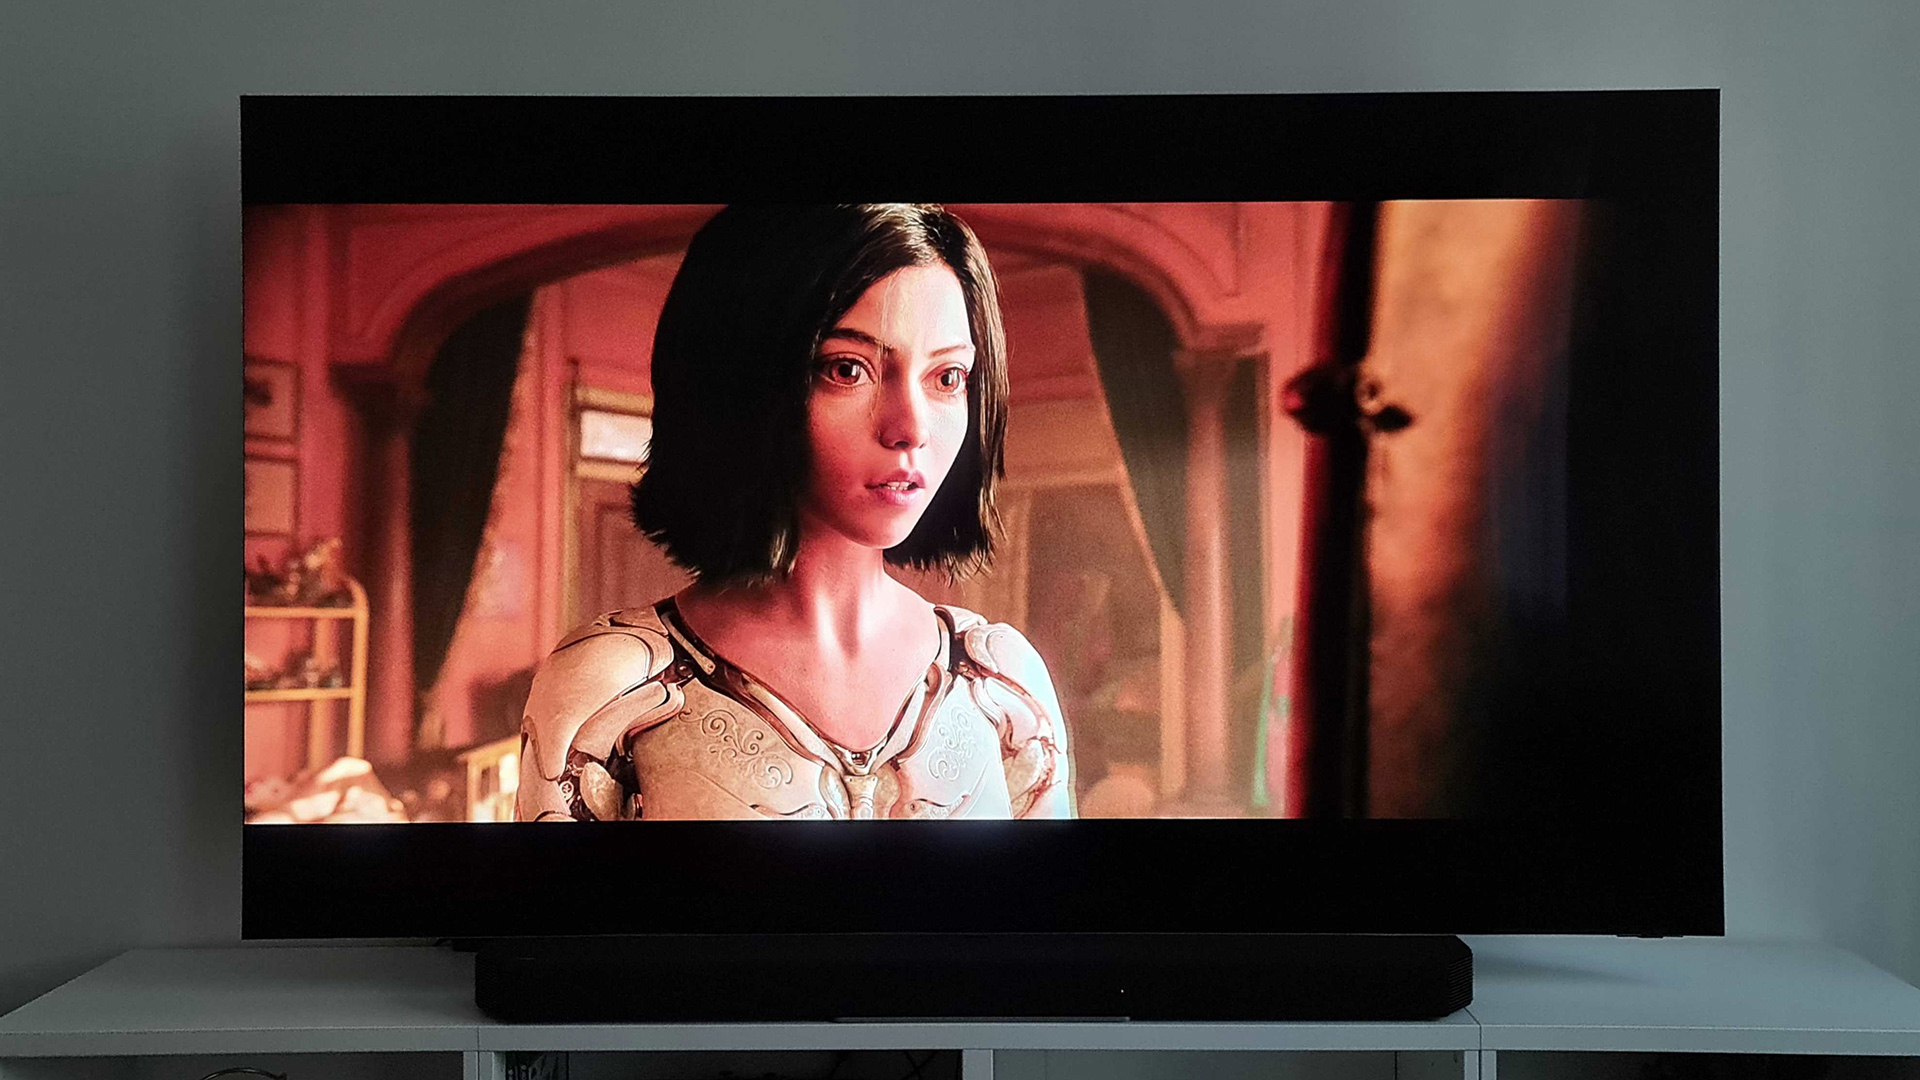 A movie being played on the Samsung QN900A Neo QLED 8K